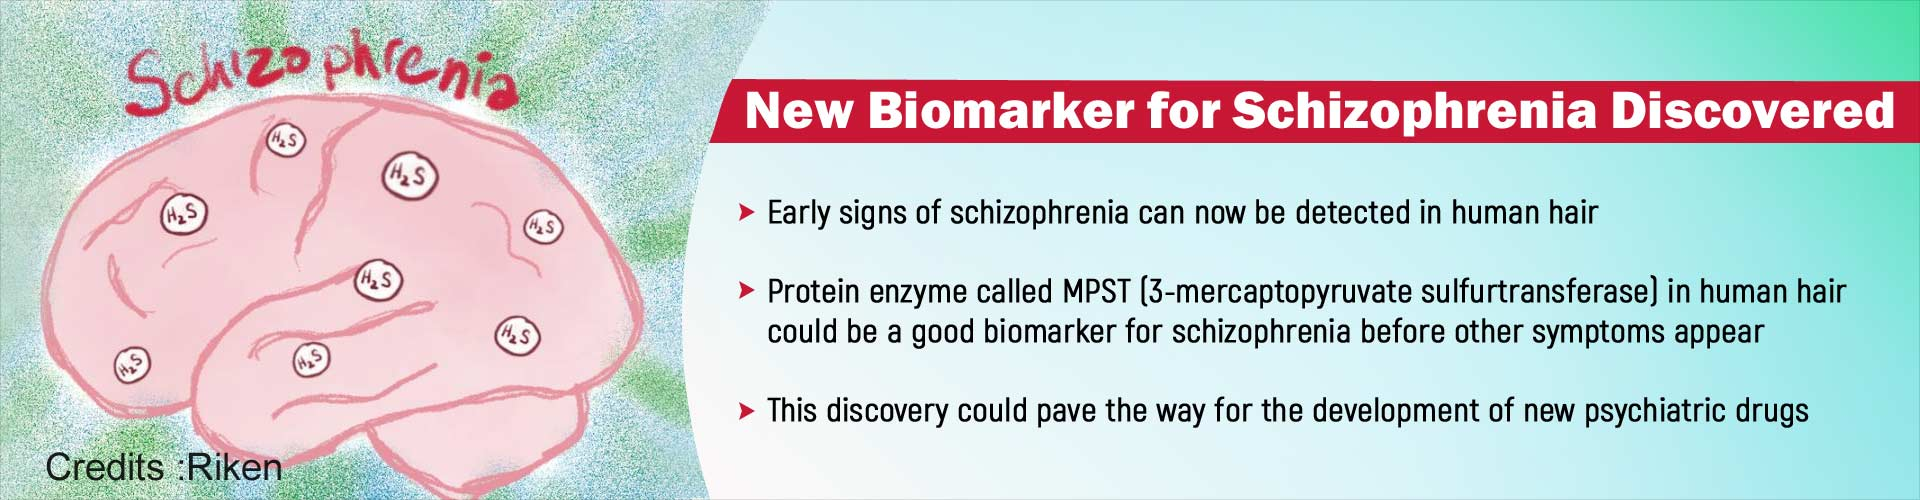 Schizophrenia Biomarker can be Identified in Human Hair: Here's How